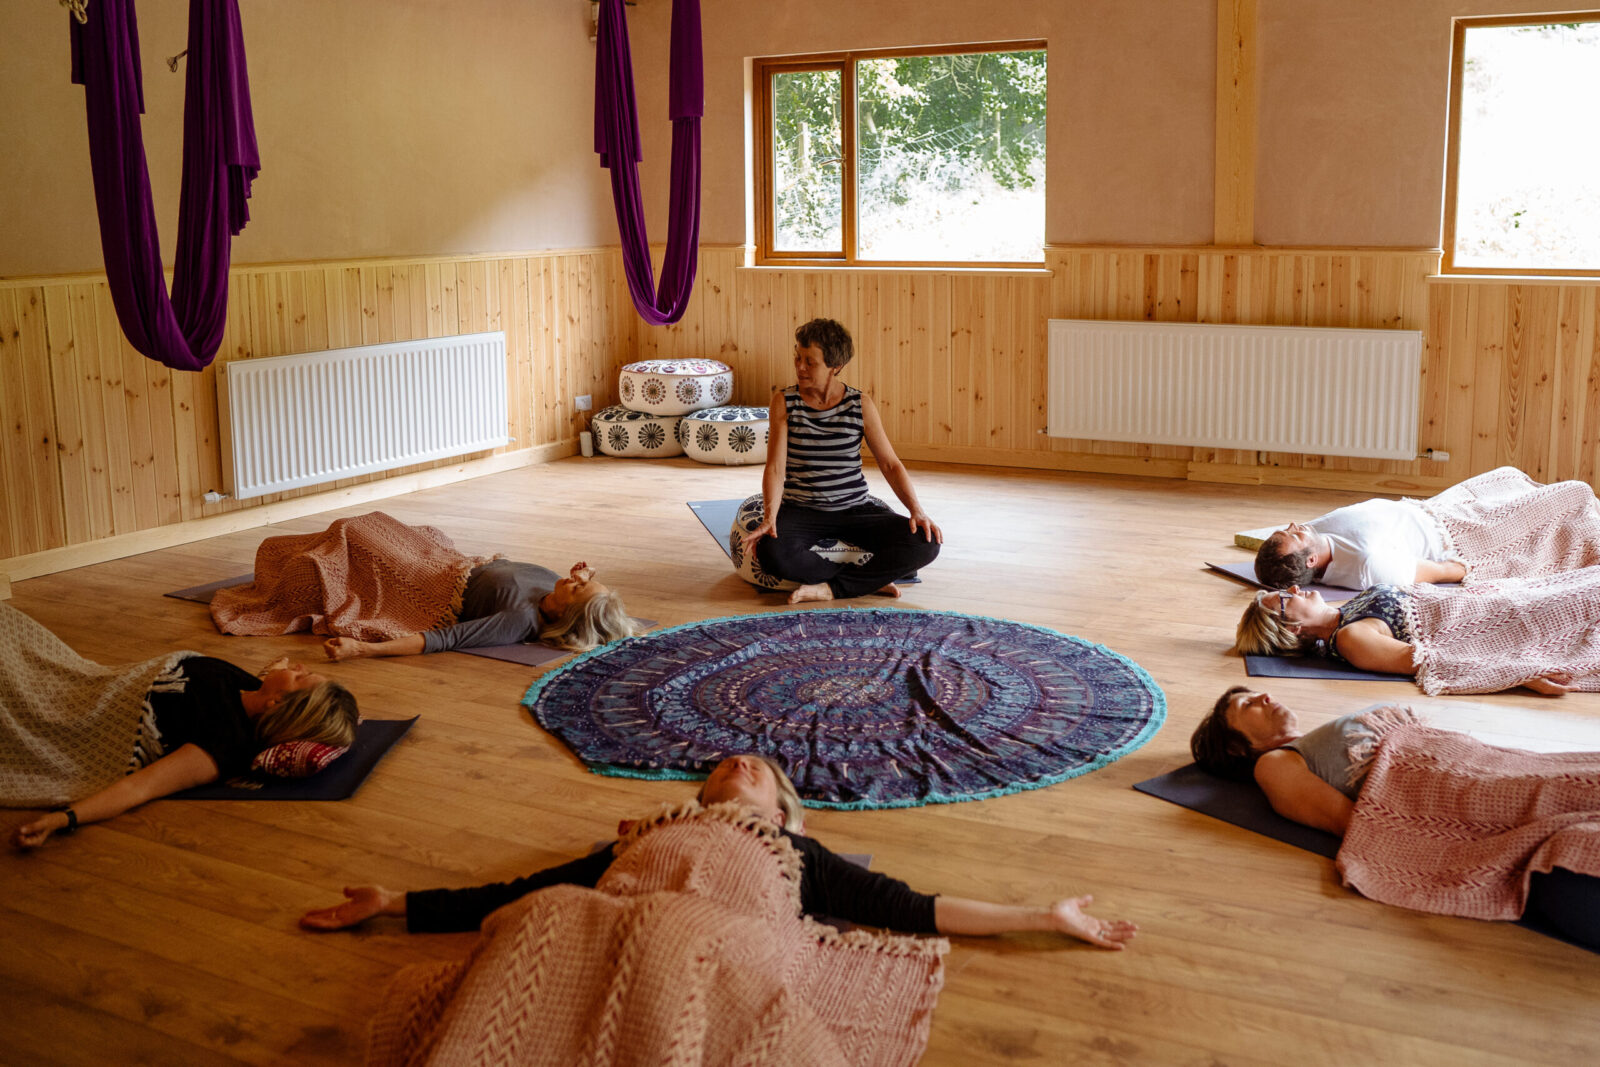 Lorraine leading a yoga class in the Yogandspice Studio, on one of our yoga retreats in North Yorkshire.